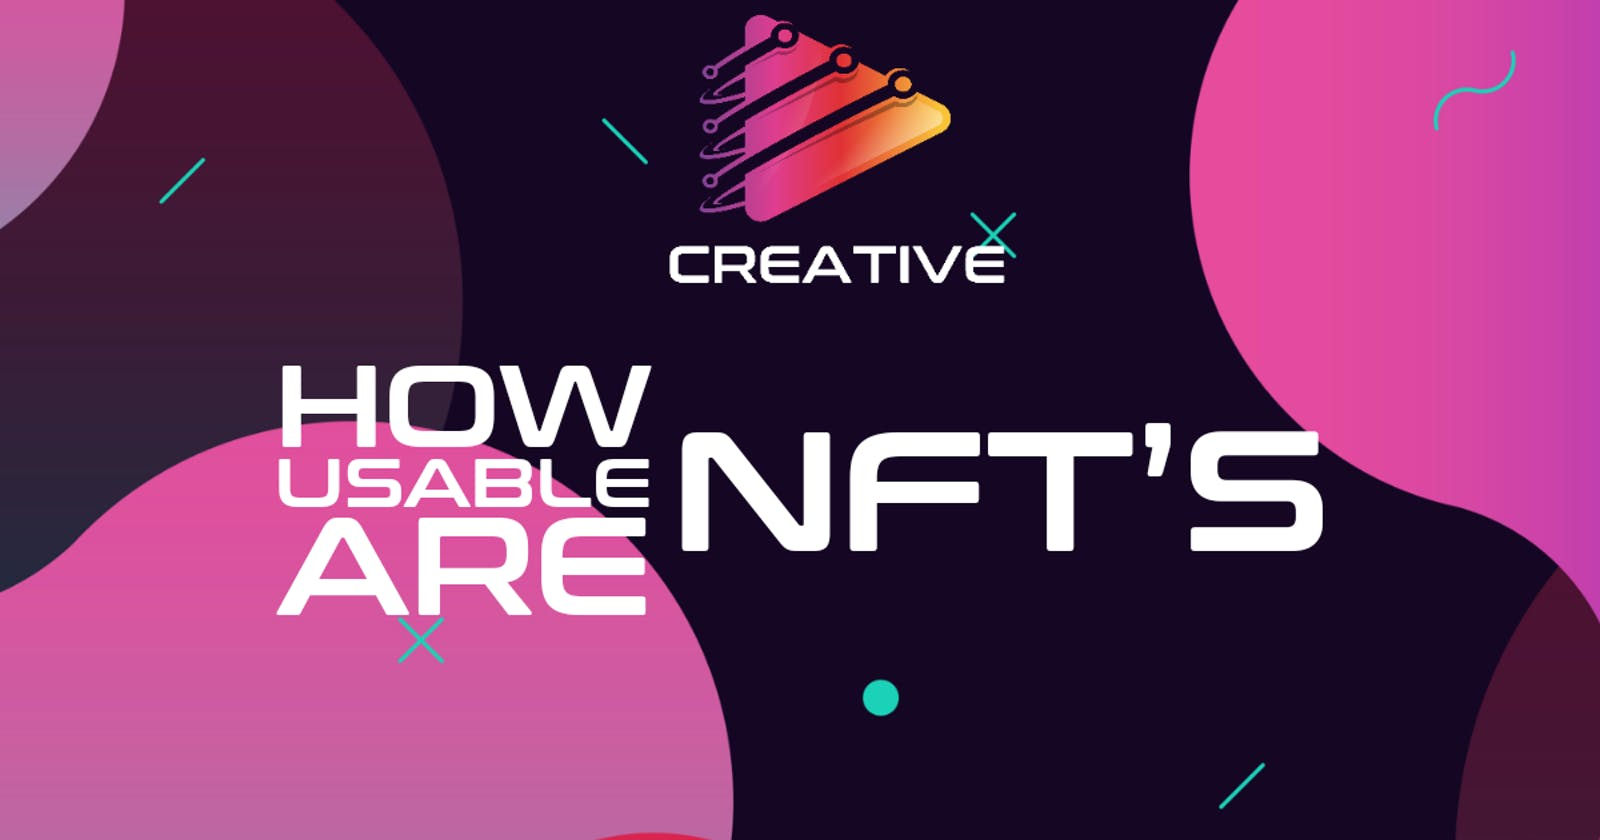 How Usable Are NFT's?